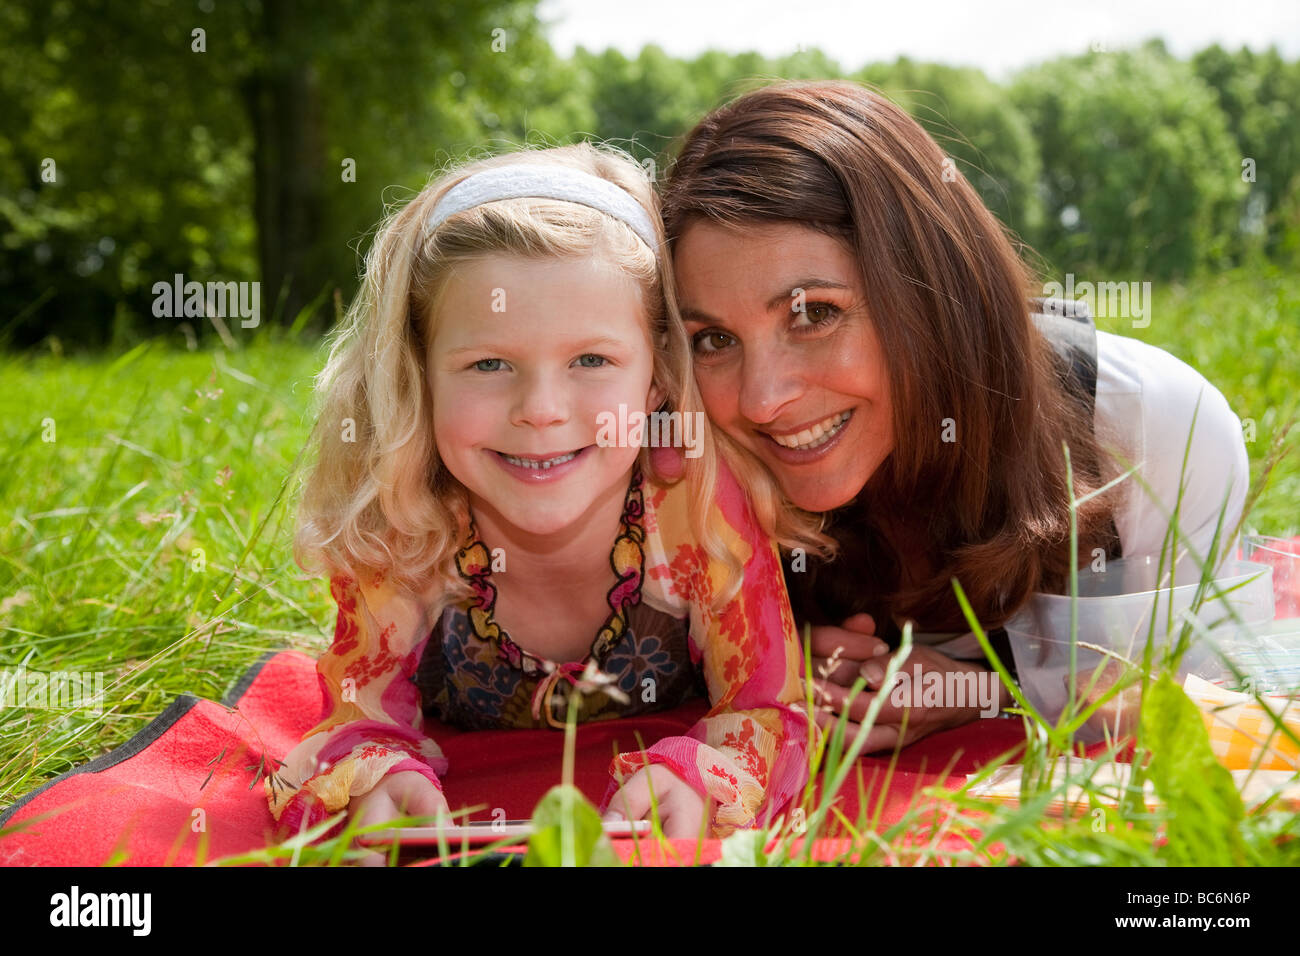 Beautiful mother and daughter together outdoors in the field - Stock Image